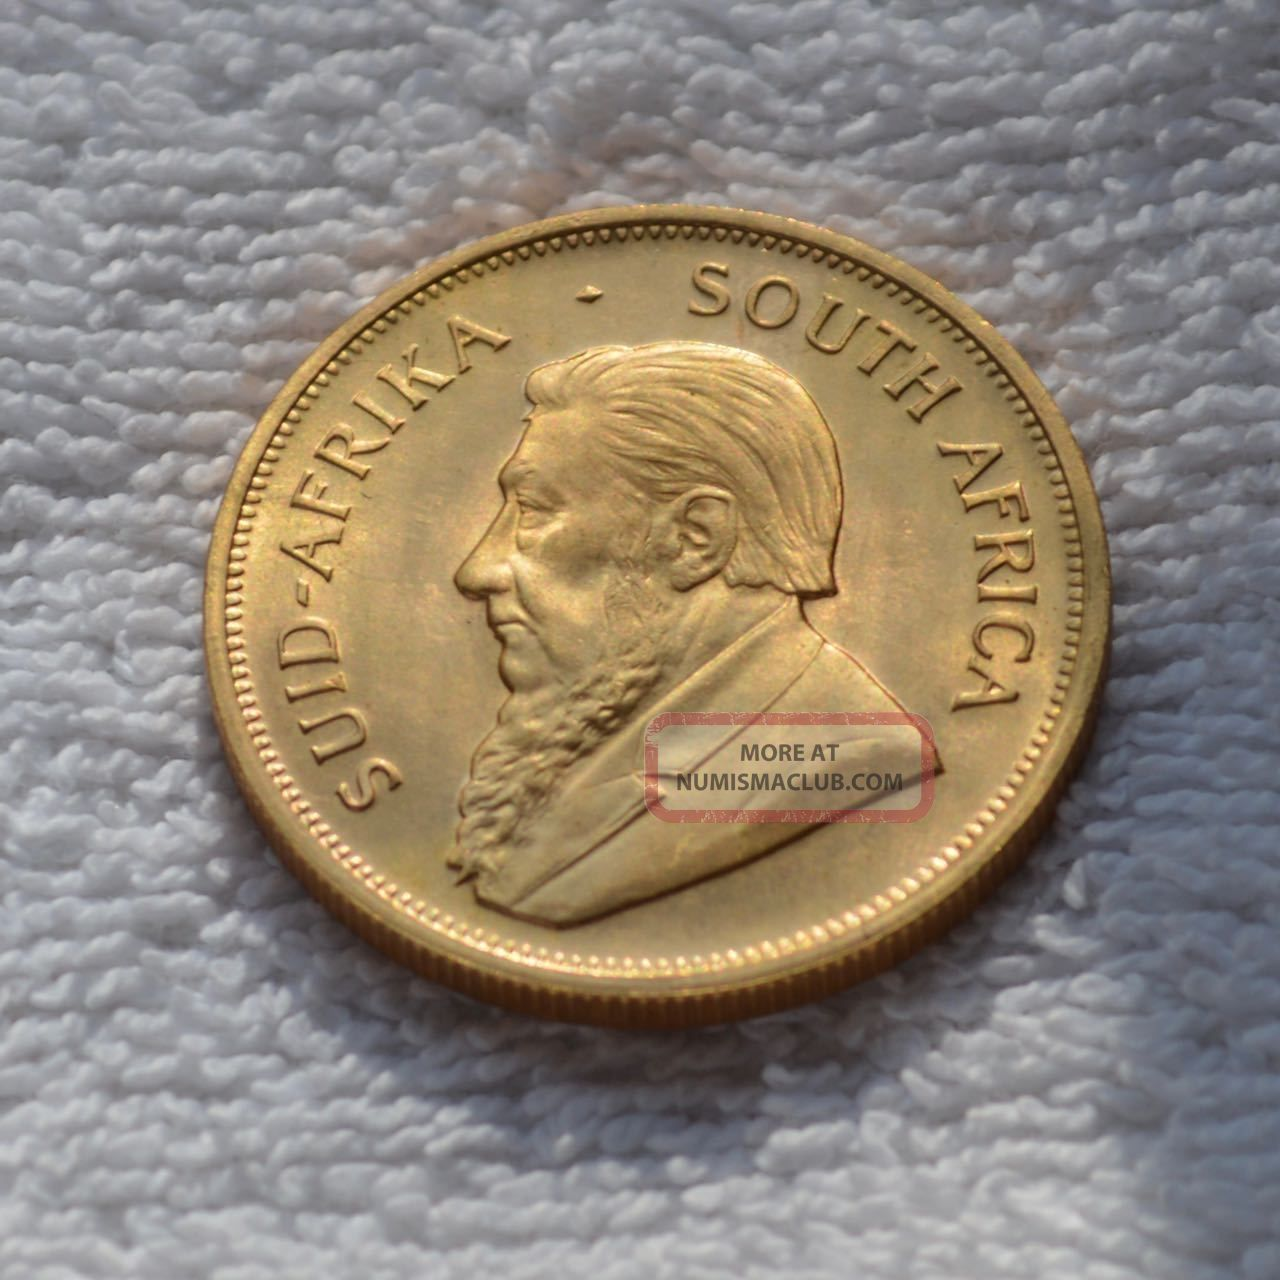 1976 Krugerrand 1 Oz.  South African Gold Coin Unc Fine Gold 1976 Troy Ounce Full Gold photo